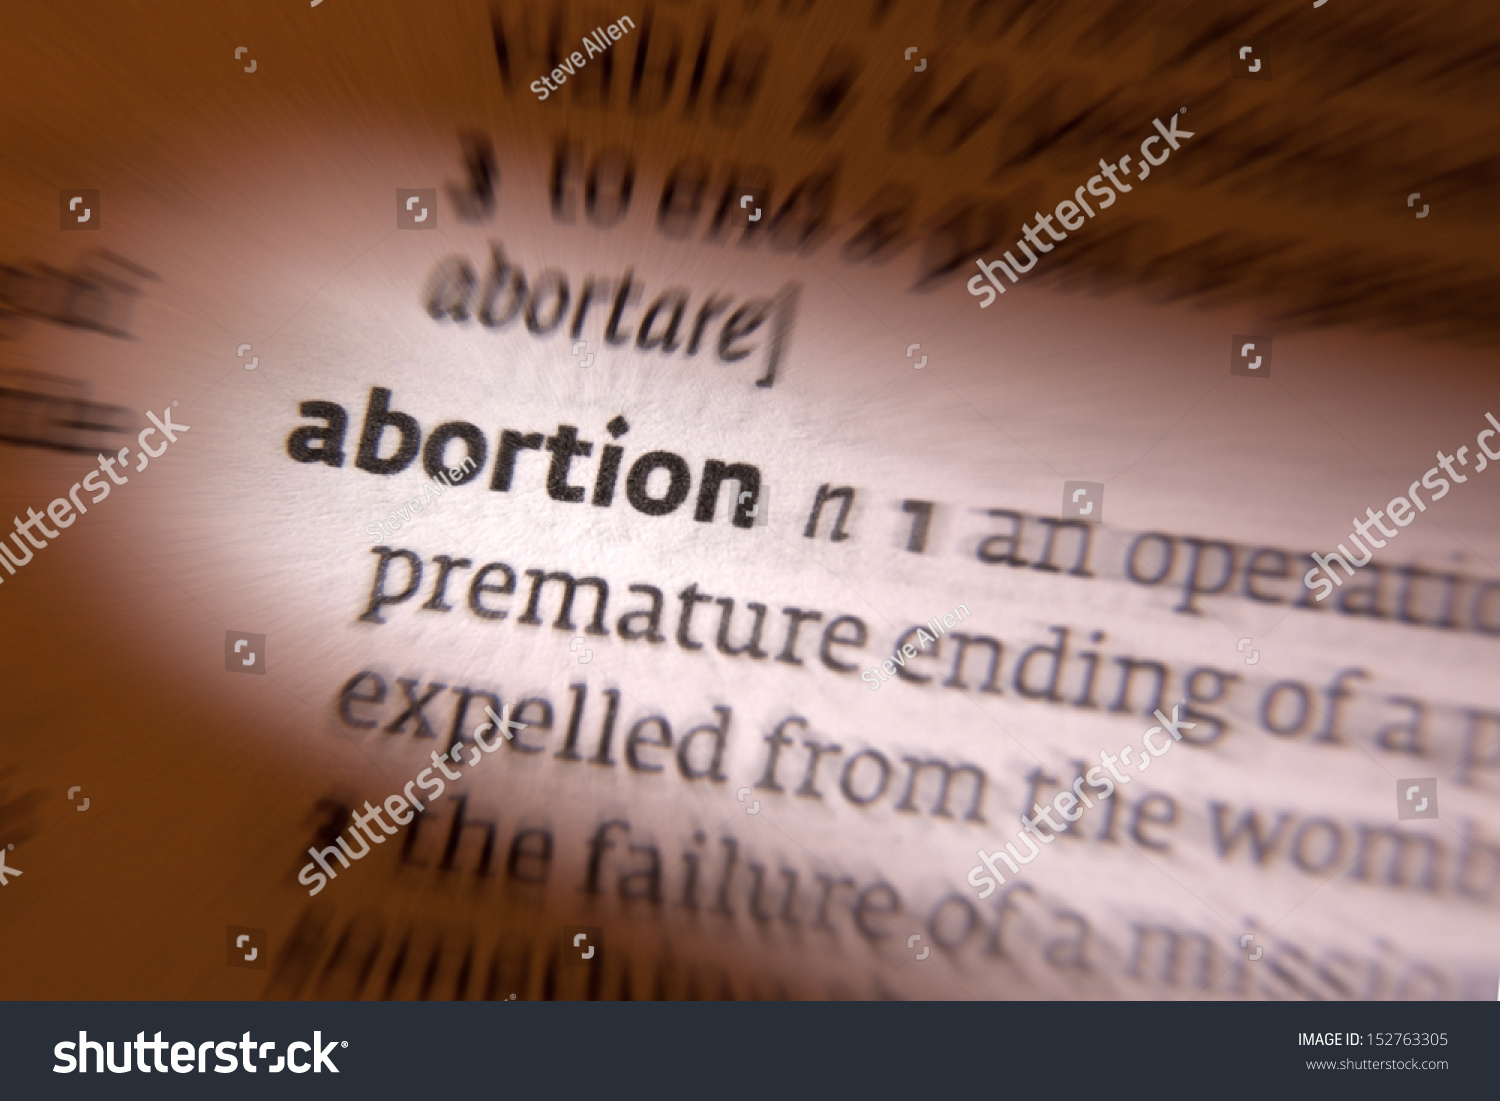 essay on abortion pro life abortion pro life vs pro choice essay  abortion pro life vs pro choice essay words abortion vs pro life essay